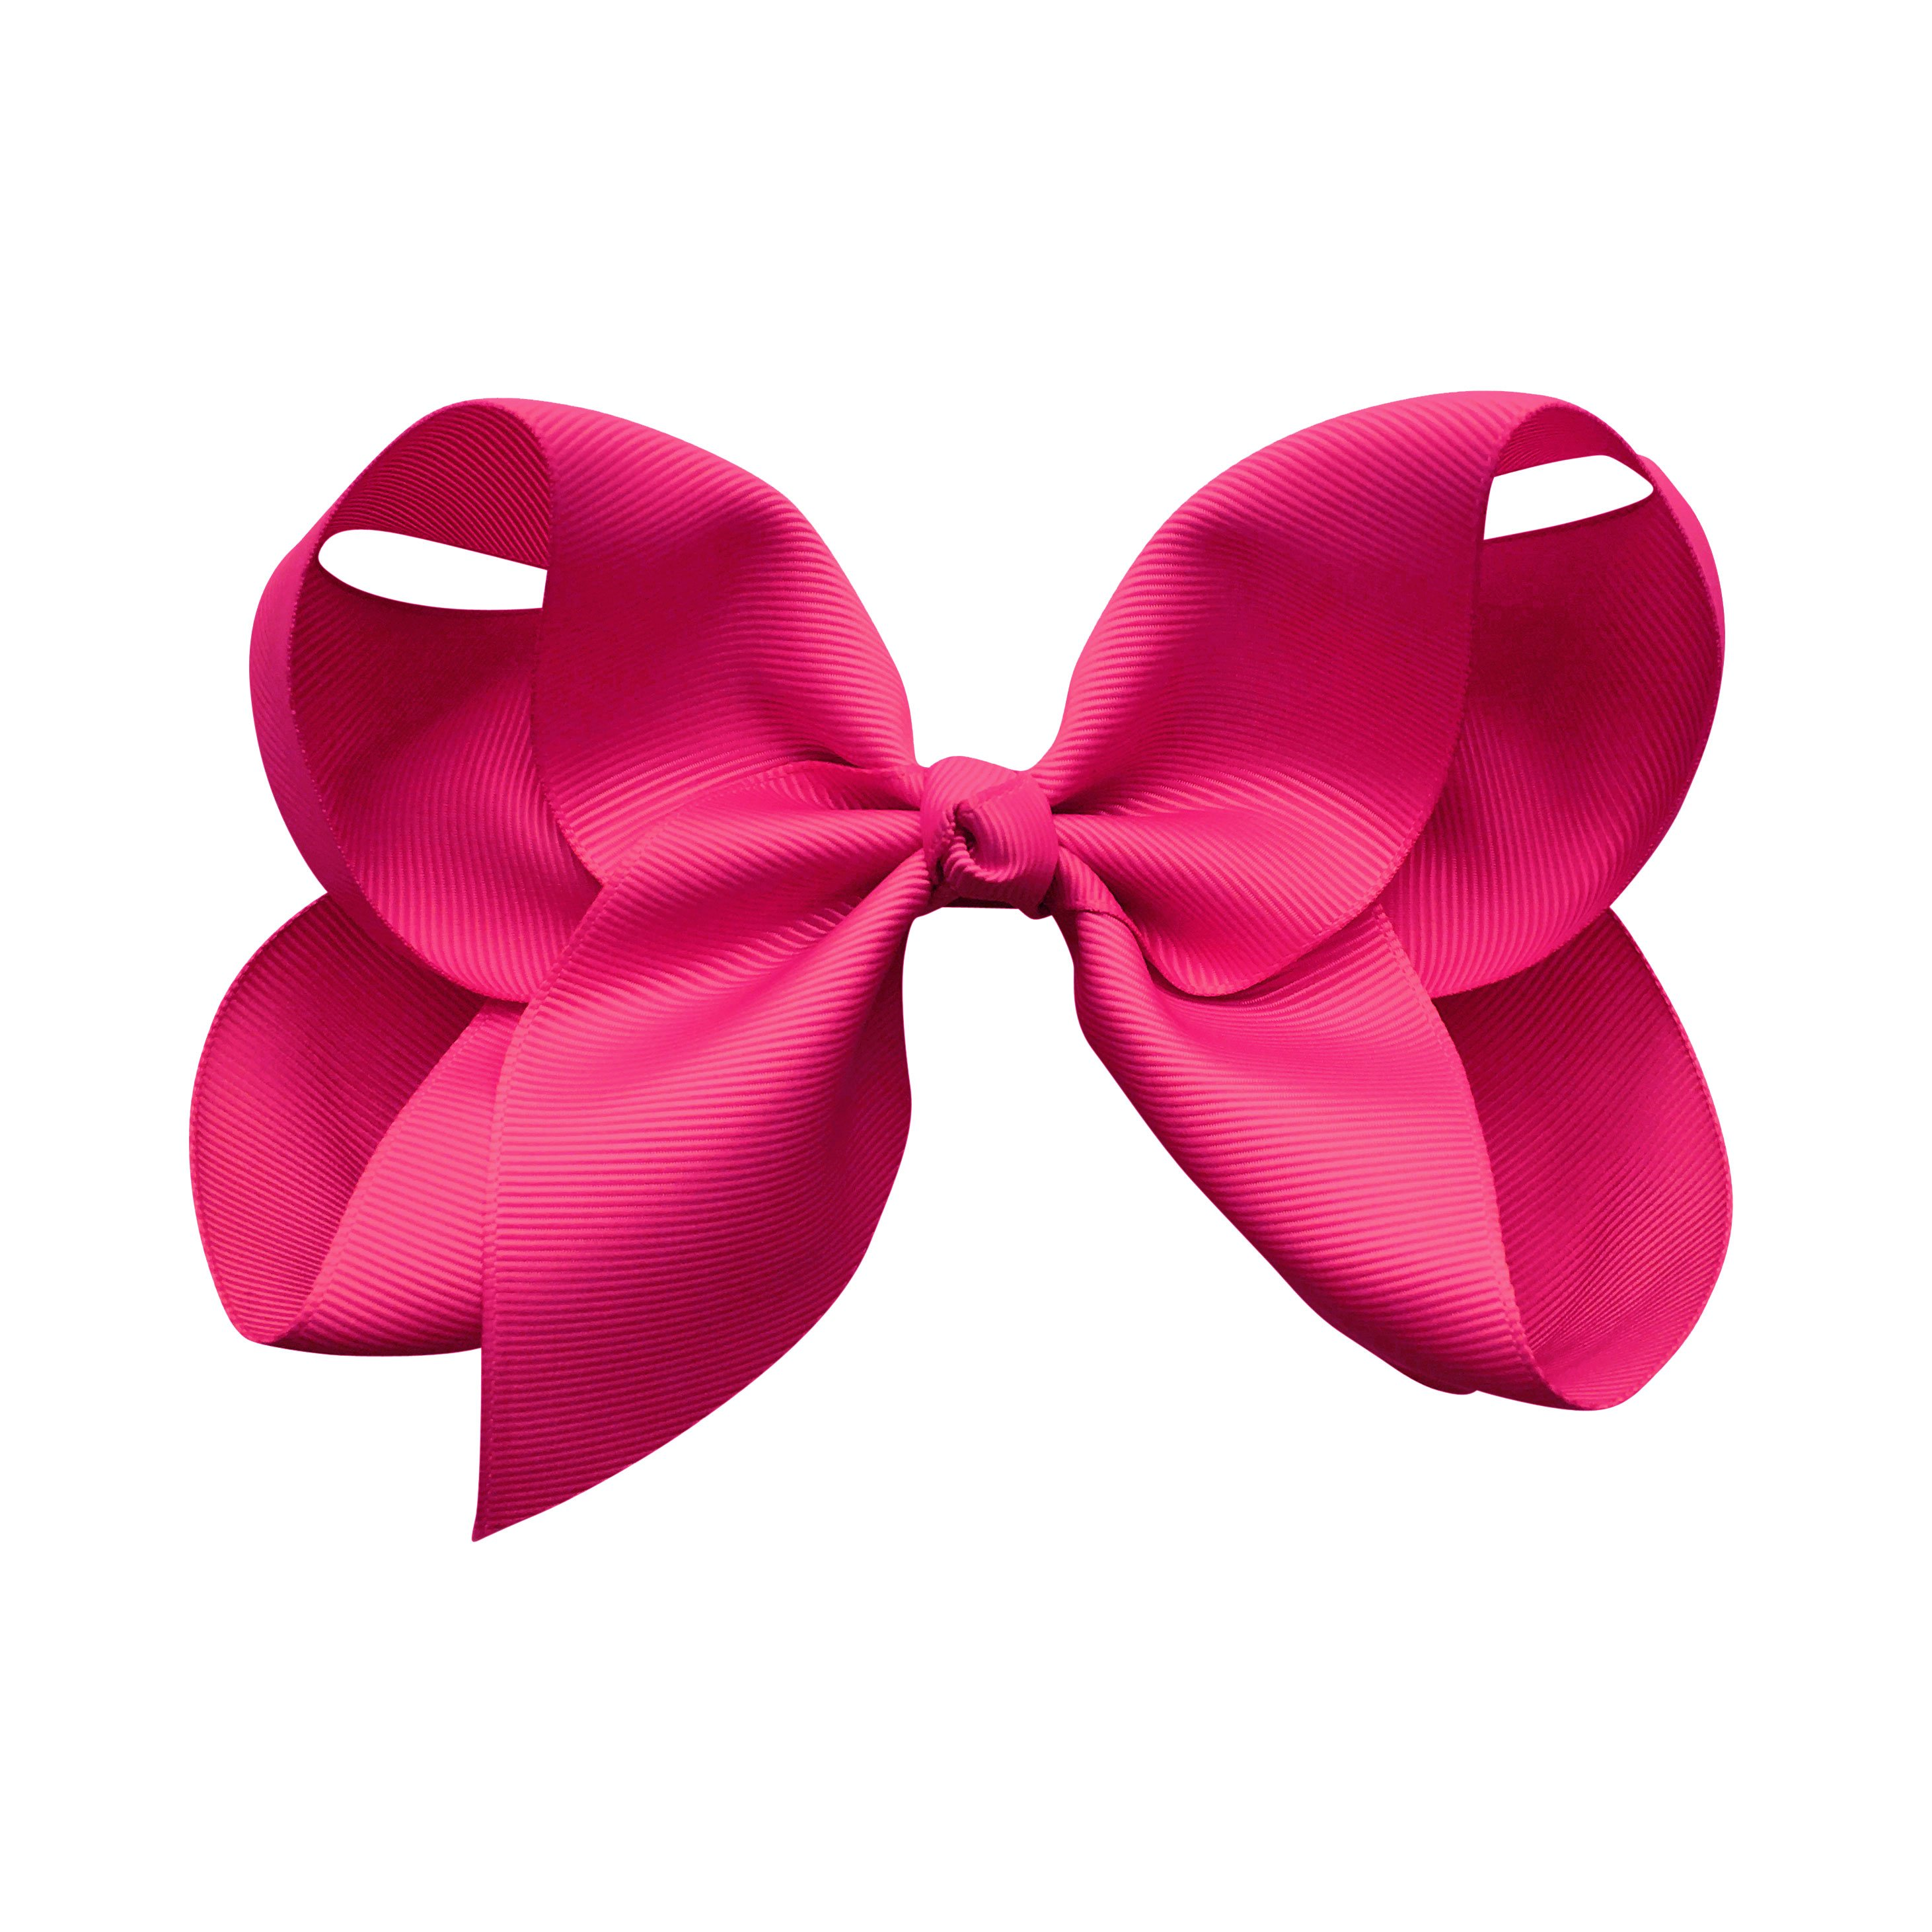 Image of Jumbo Boutique Bow - alligator clip - azalea